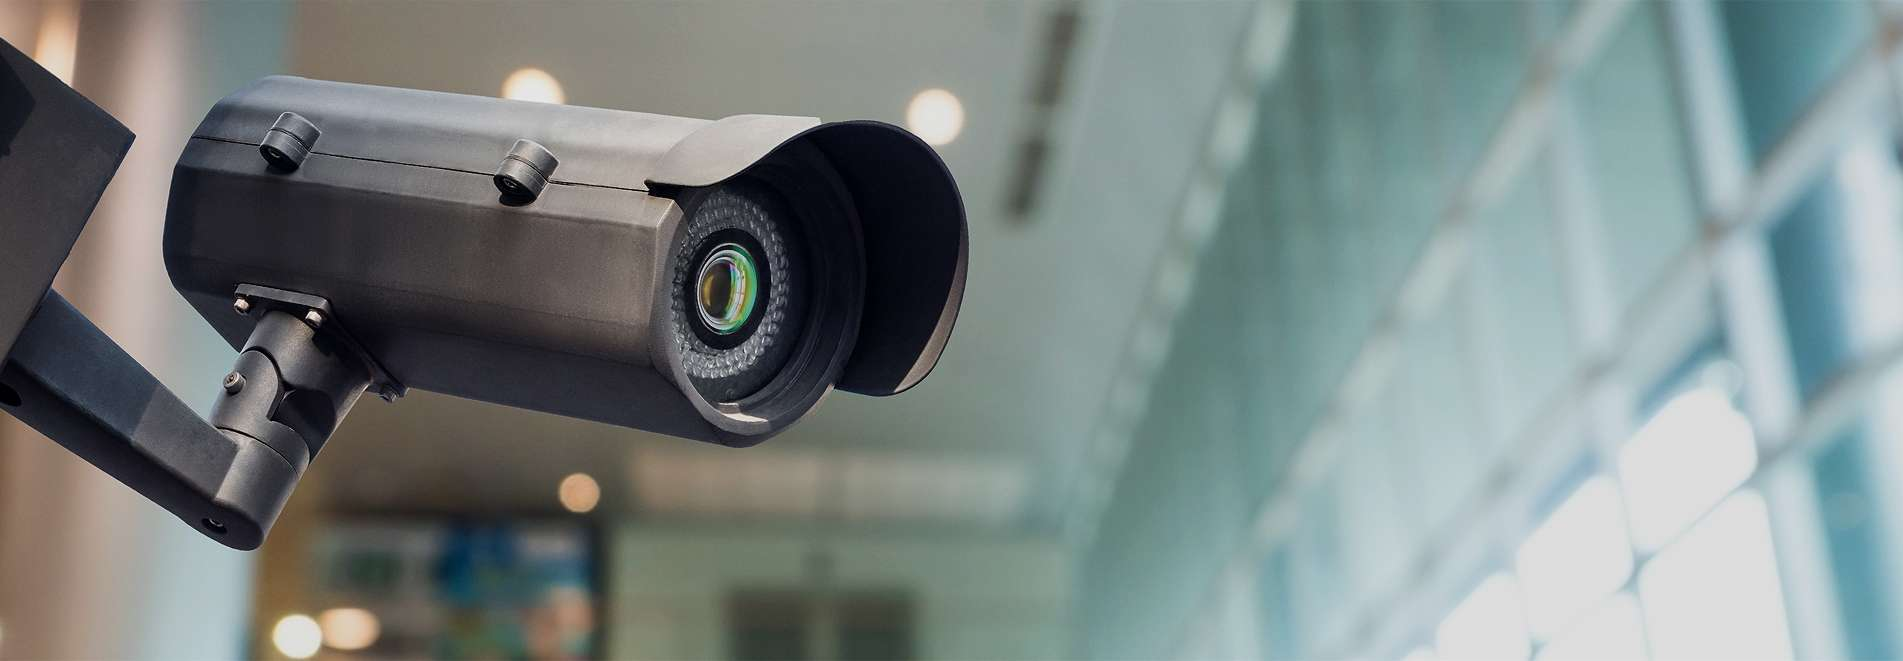 CCTV cameras, access control systems, wireless security